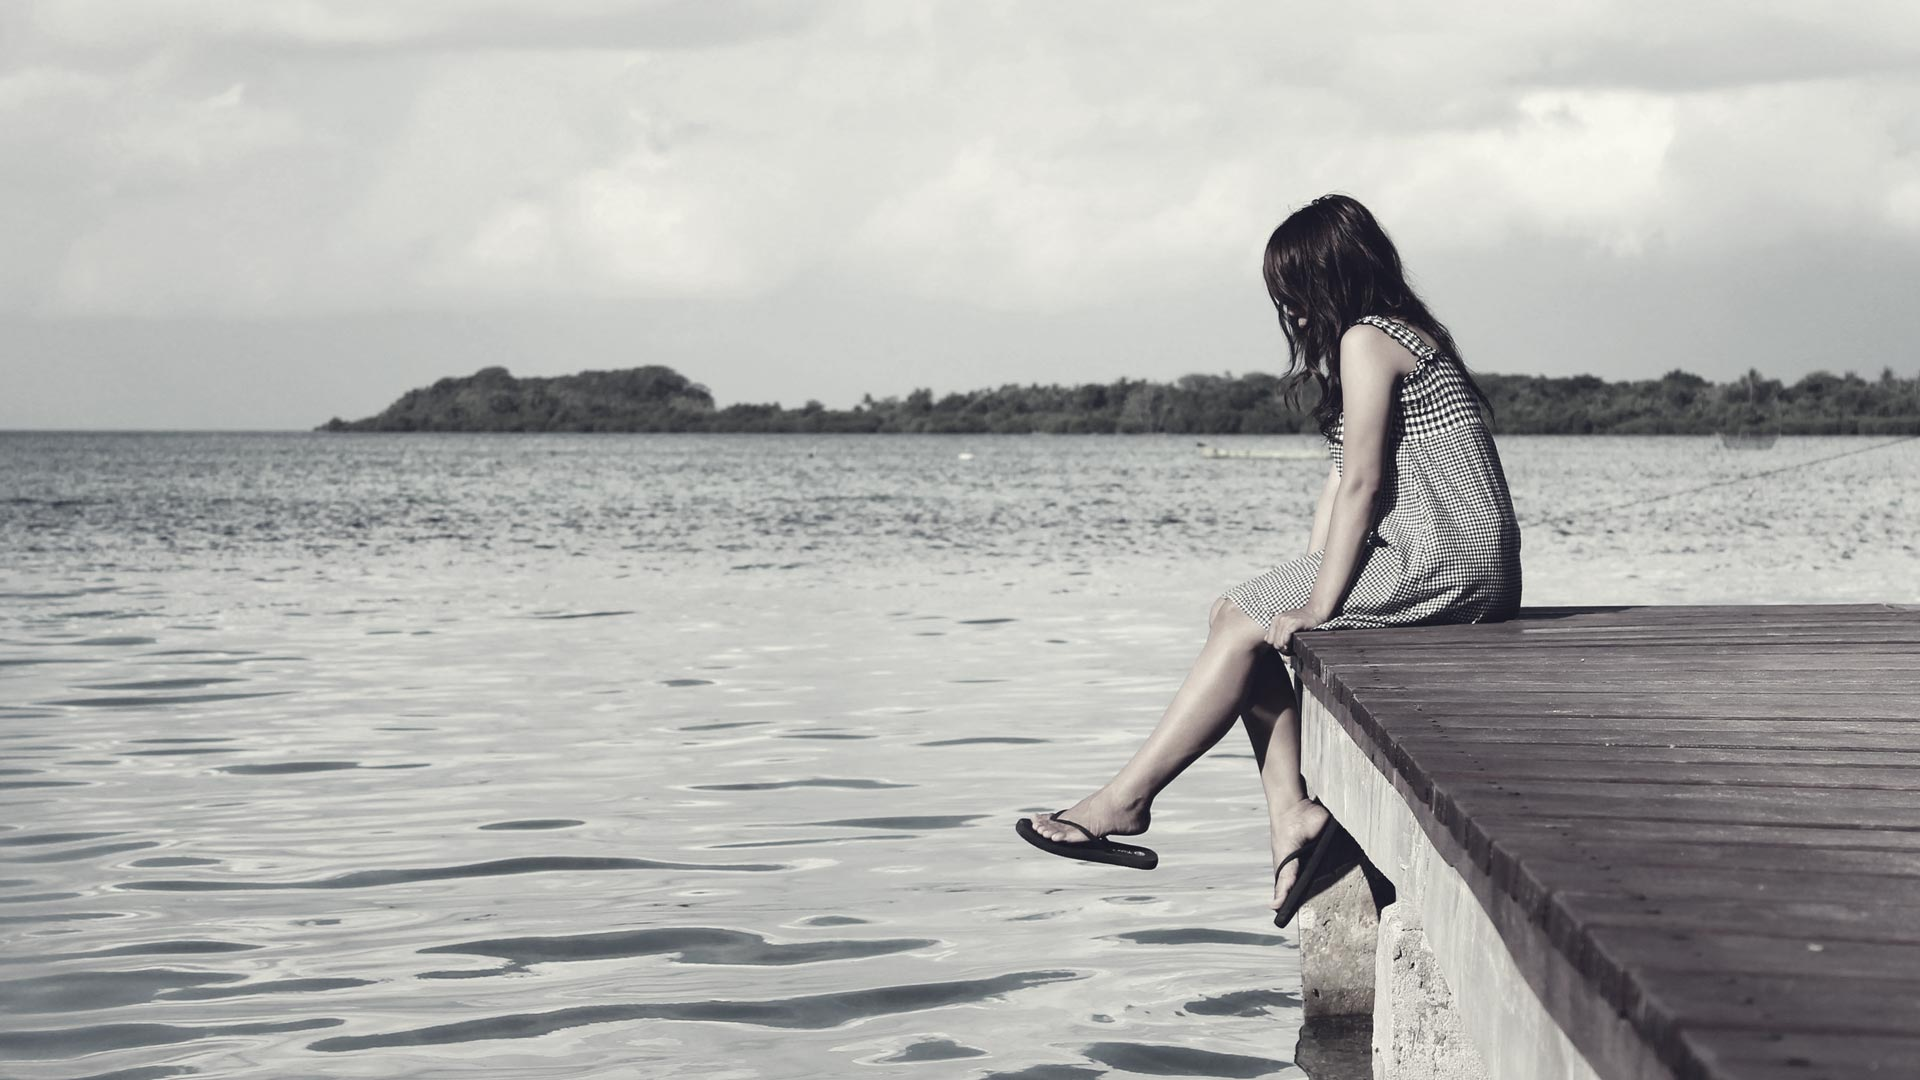 How Positive Desires Create Unhappiness Within Moments To Decades Later